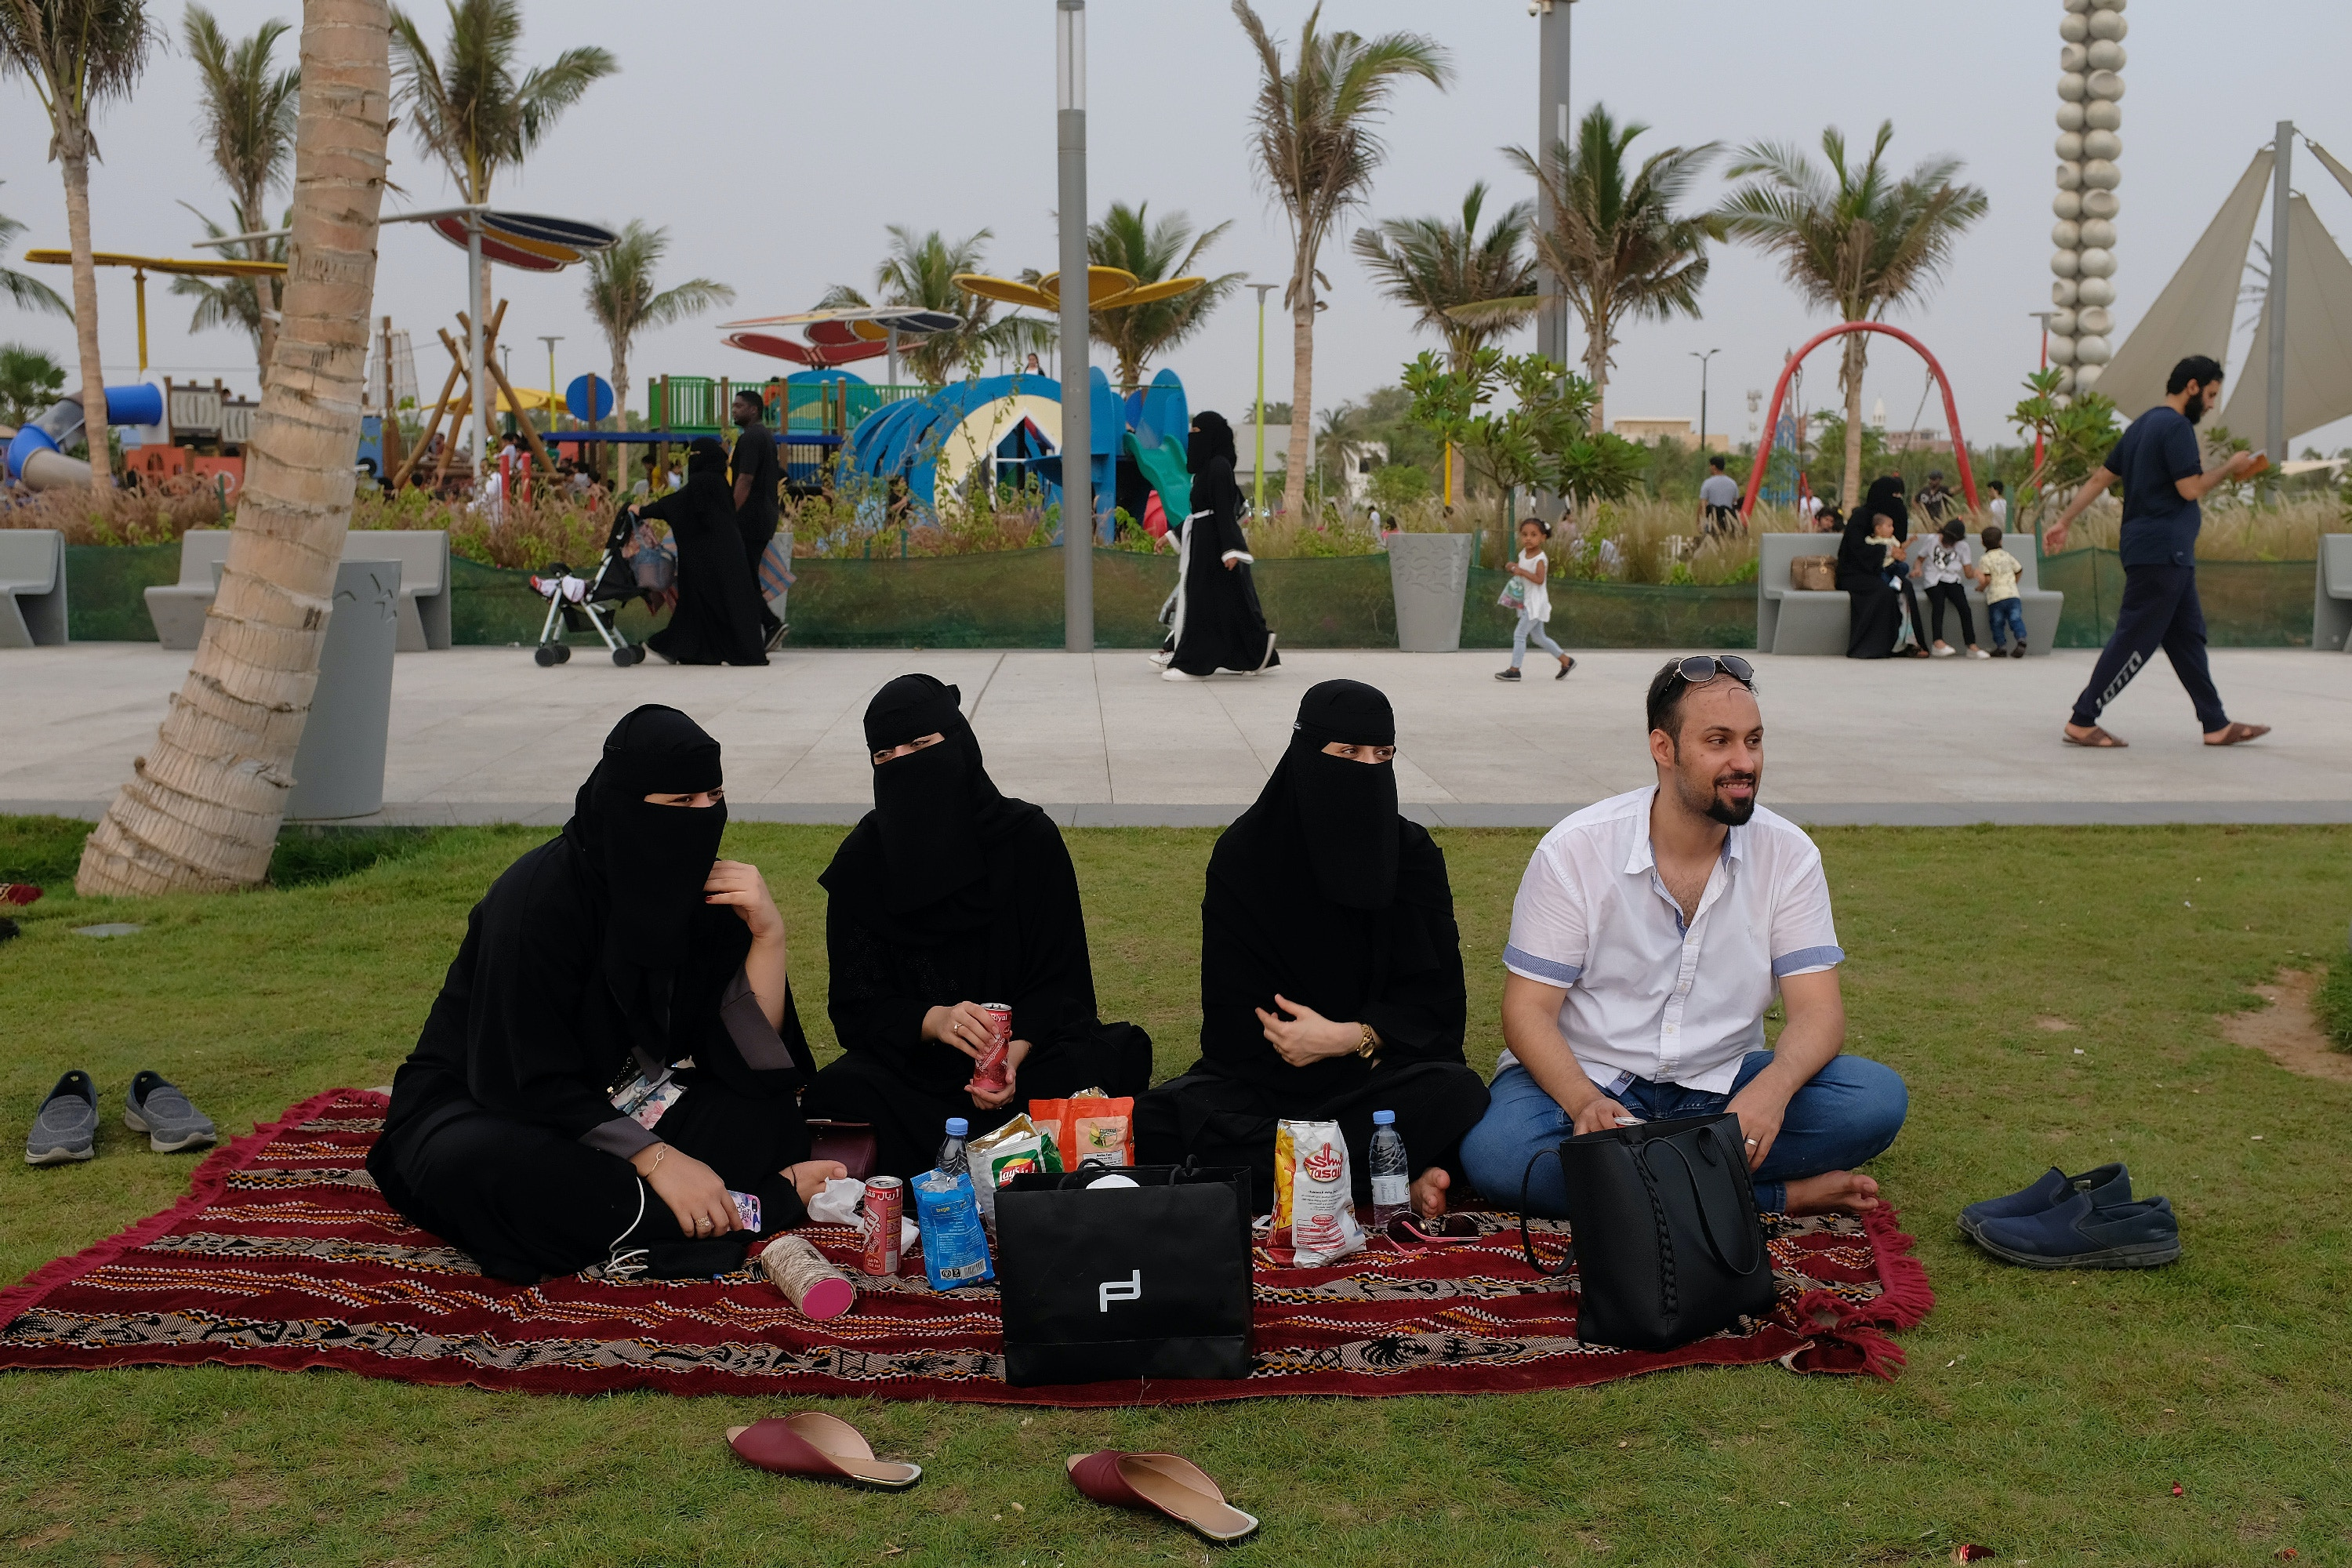 JEDDAH, SAUDI ARABIA - JUNE 22:  Young Saudis, including three women wearing the traditional niqab and black abayas, relax on the Corniche waterfront on June 22, 2018 in Jeddah, Saudi Arabia. The Saudi government, under Crown Prince Mohammad Bin Salman, is phasing in an ongoing series of reforms to both diversify the Saudi economy and to liberalize its society. The reforms also seek to empower women by restoring them basic legal rights, allowing them increasing independence and encouraging their participation in the workforce. Saudi Arabia is among the most conservative countries in the world and women have traditionally had much fewer rights than men.  (Photo by Sean Gallup/Getty Images)